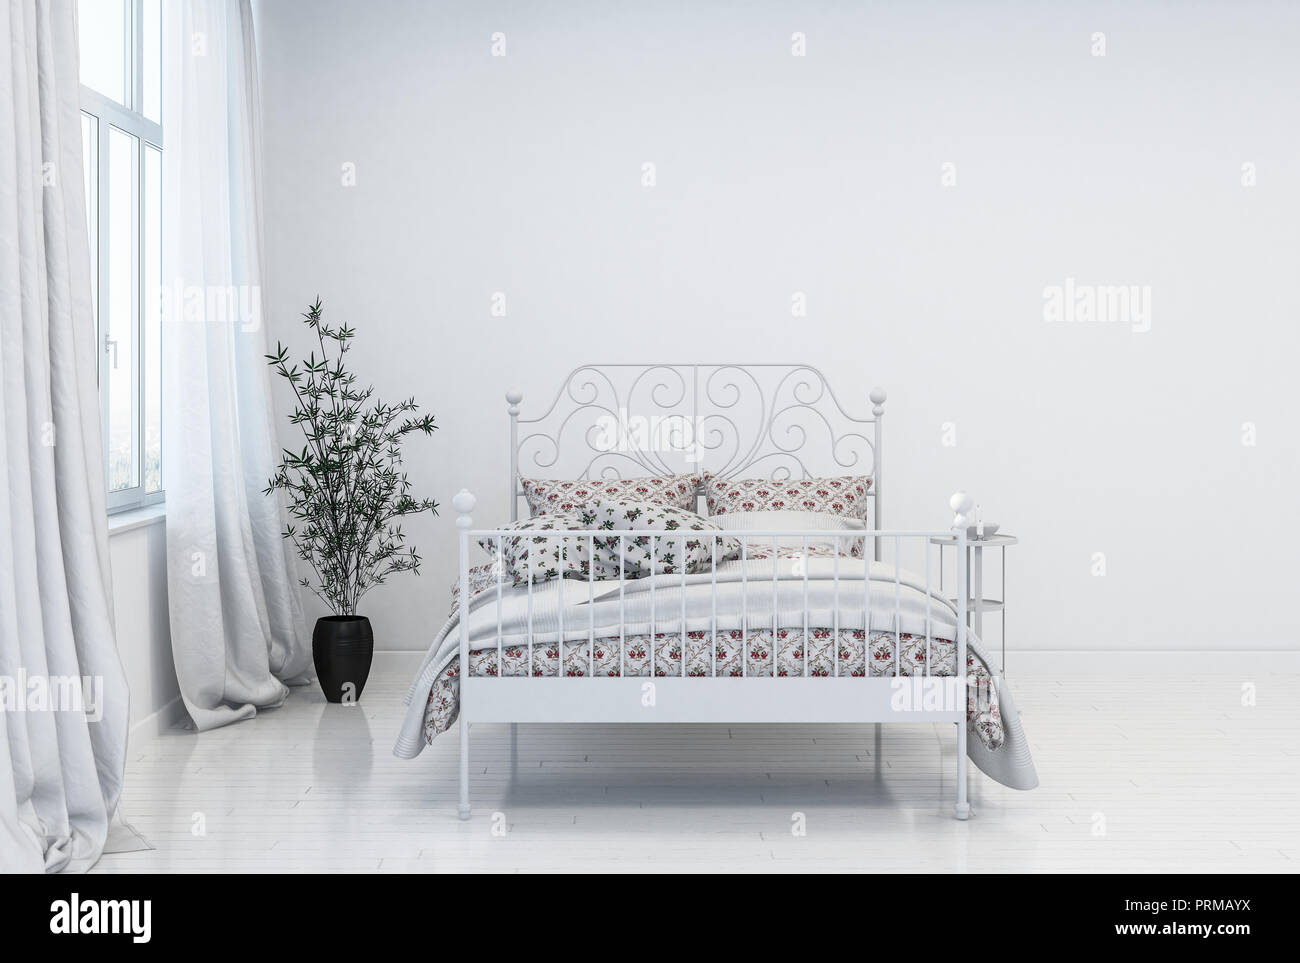 Trendy Modern Minimalist White Bedroom Interior With Double Bed With Metal Frame In Front Of A Window With Long Drapes And Potted Plant 3d Rendering Stock Photo Alamy